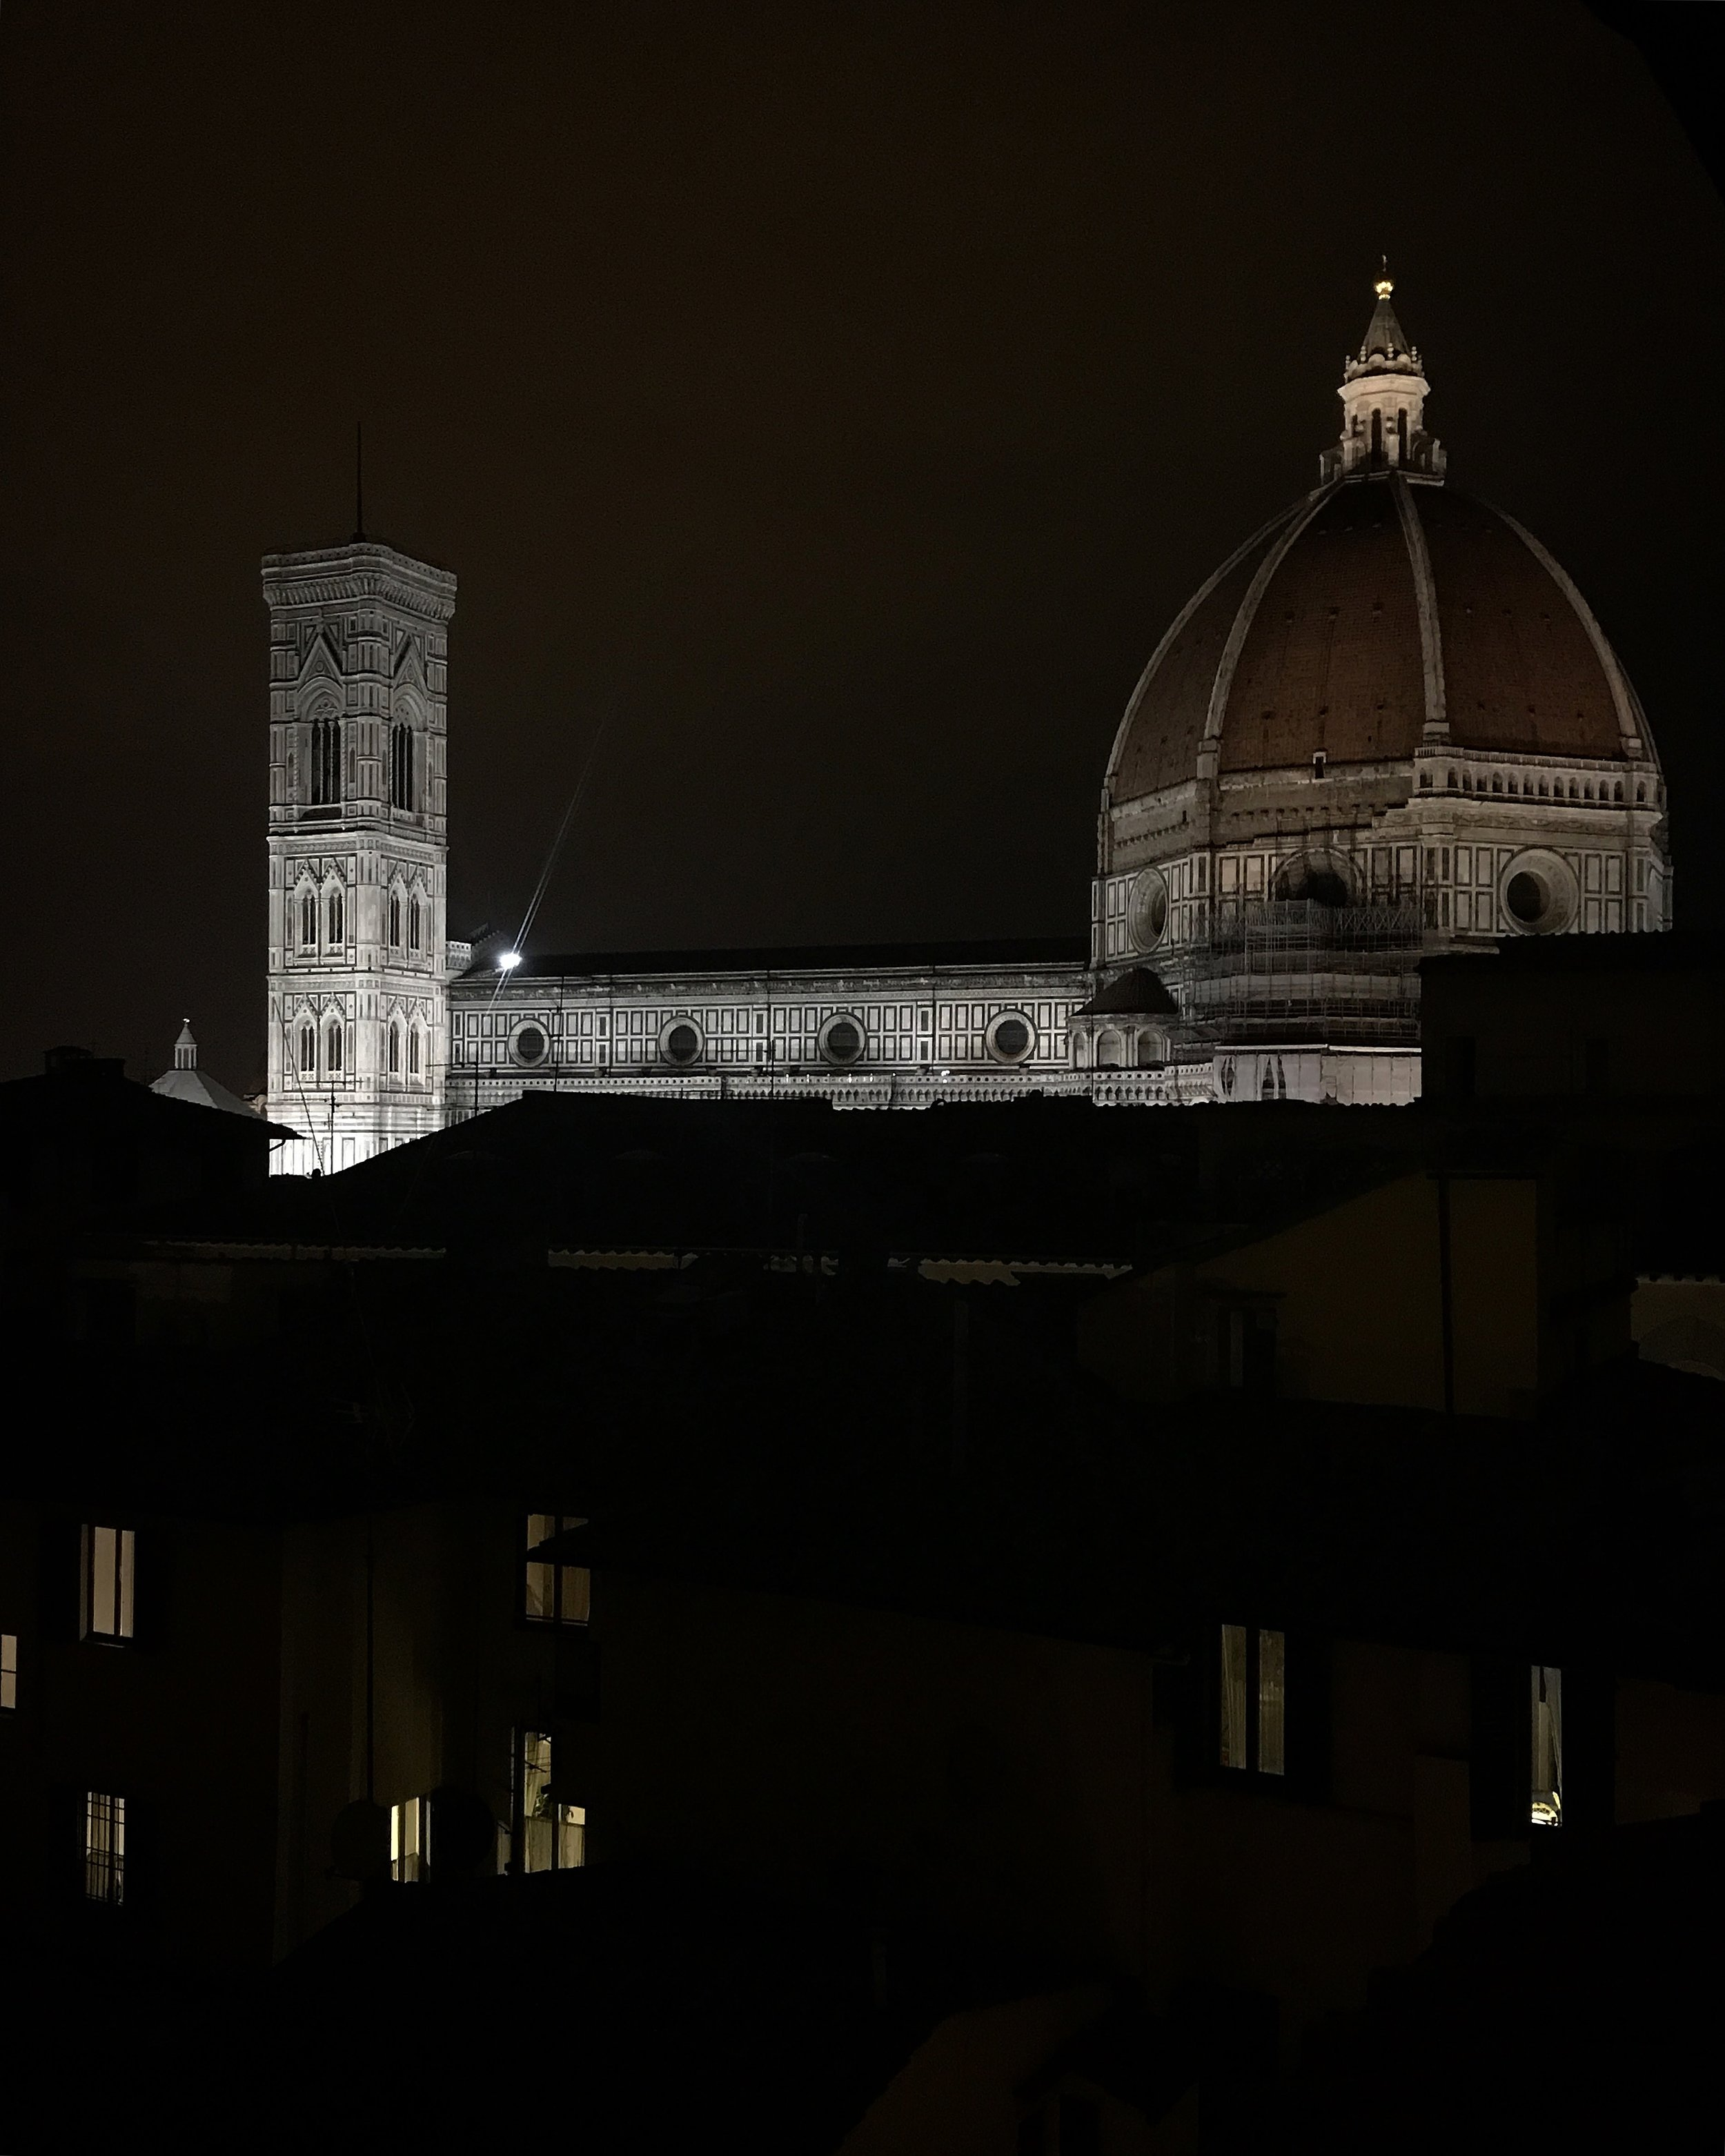 Duomo Firenze at night from the rooftop of the Hotel Grand Cavour